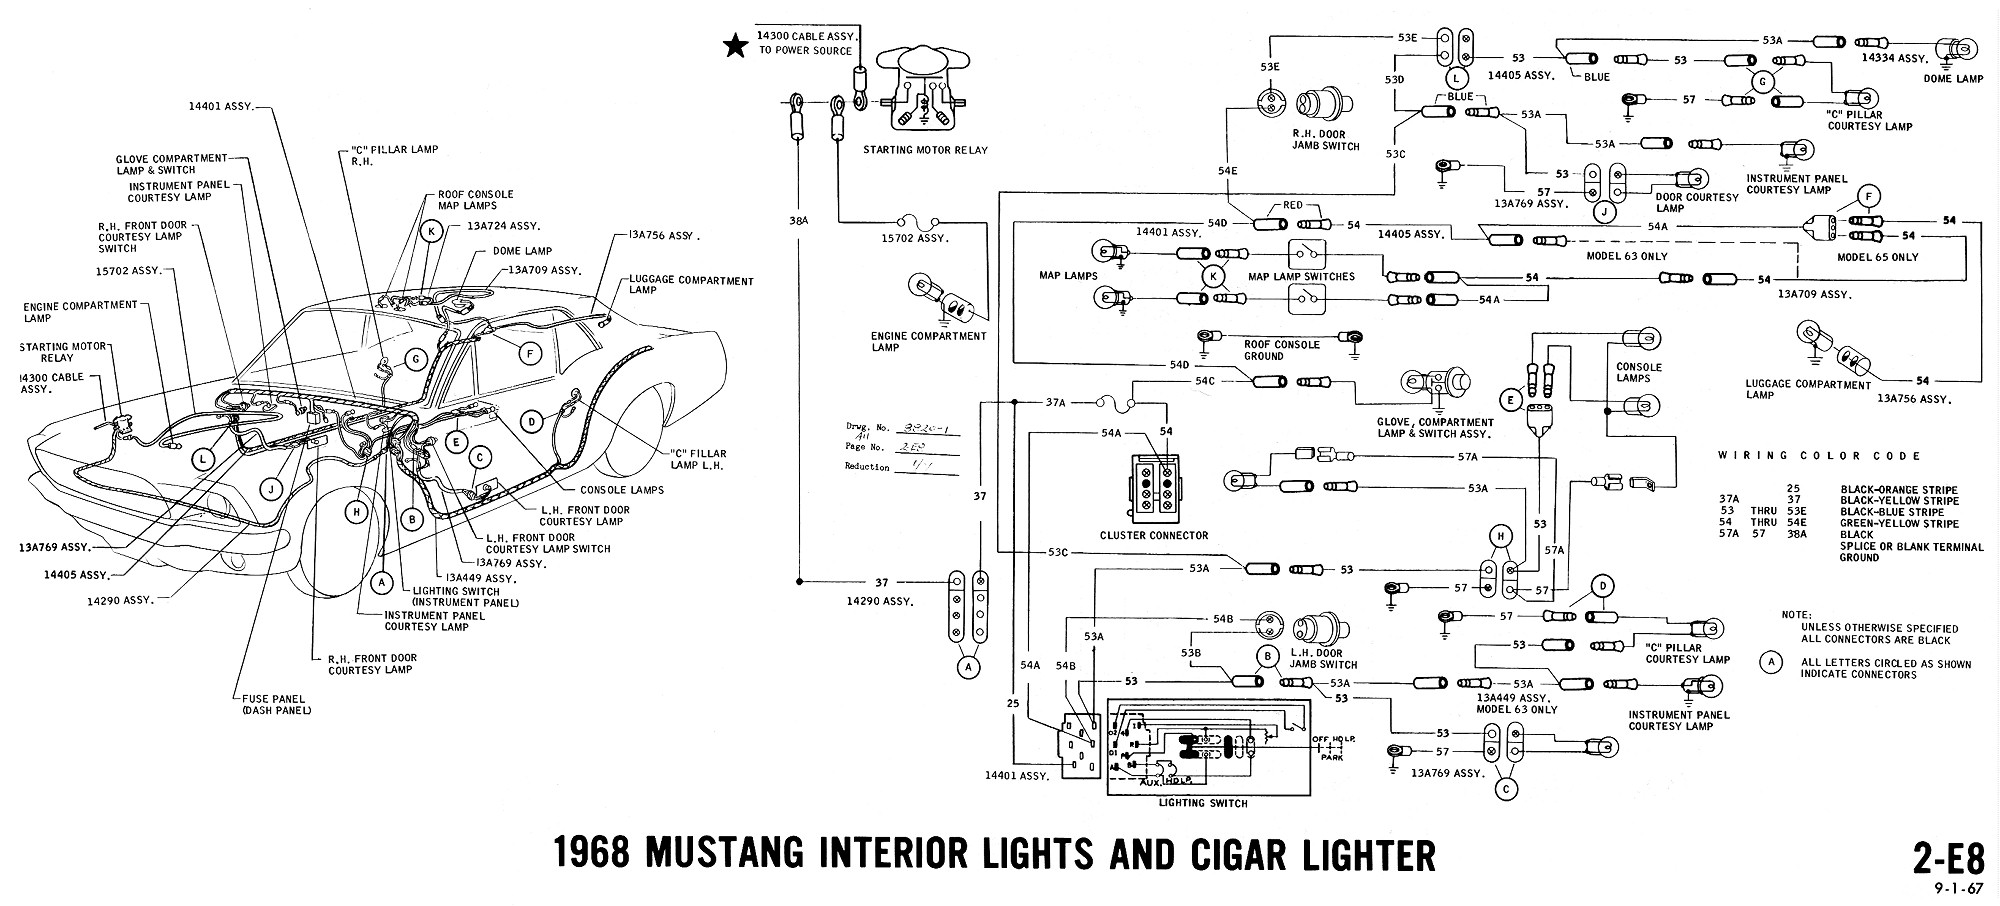 wiring diagram for honda with 1968 Mustang Wiring Diagram Vacuum Schematics on 1968 Mustang Wiring Diagram Vacuum Schematics as well Vtx 1800c Diode Fix in addition Oxygen sensor location additionally Need Oe Wiring Schematics 3141043 further 2003 Lincoln Navigator 5 4l Serpentine Belt Diagram.